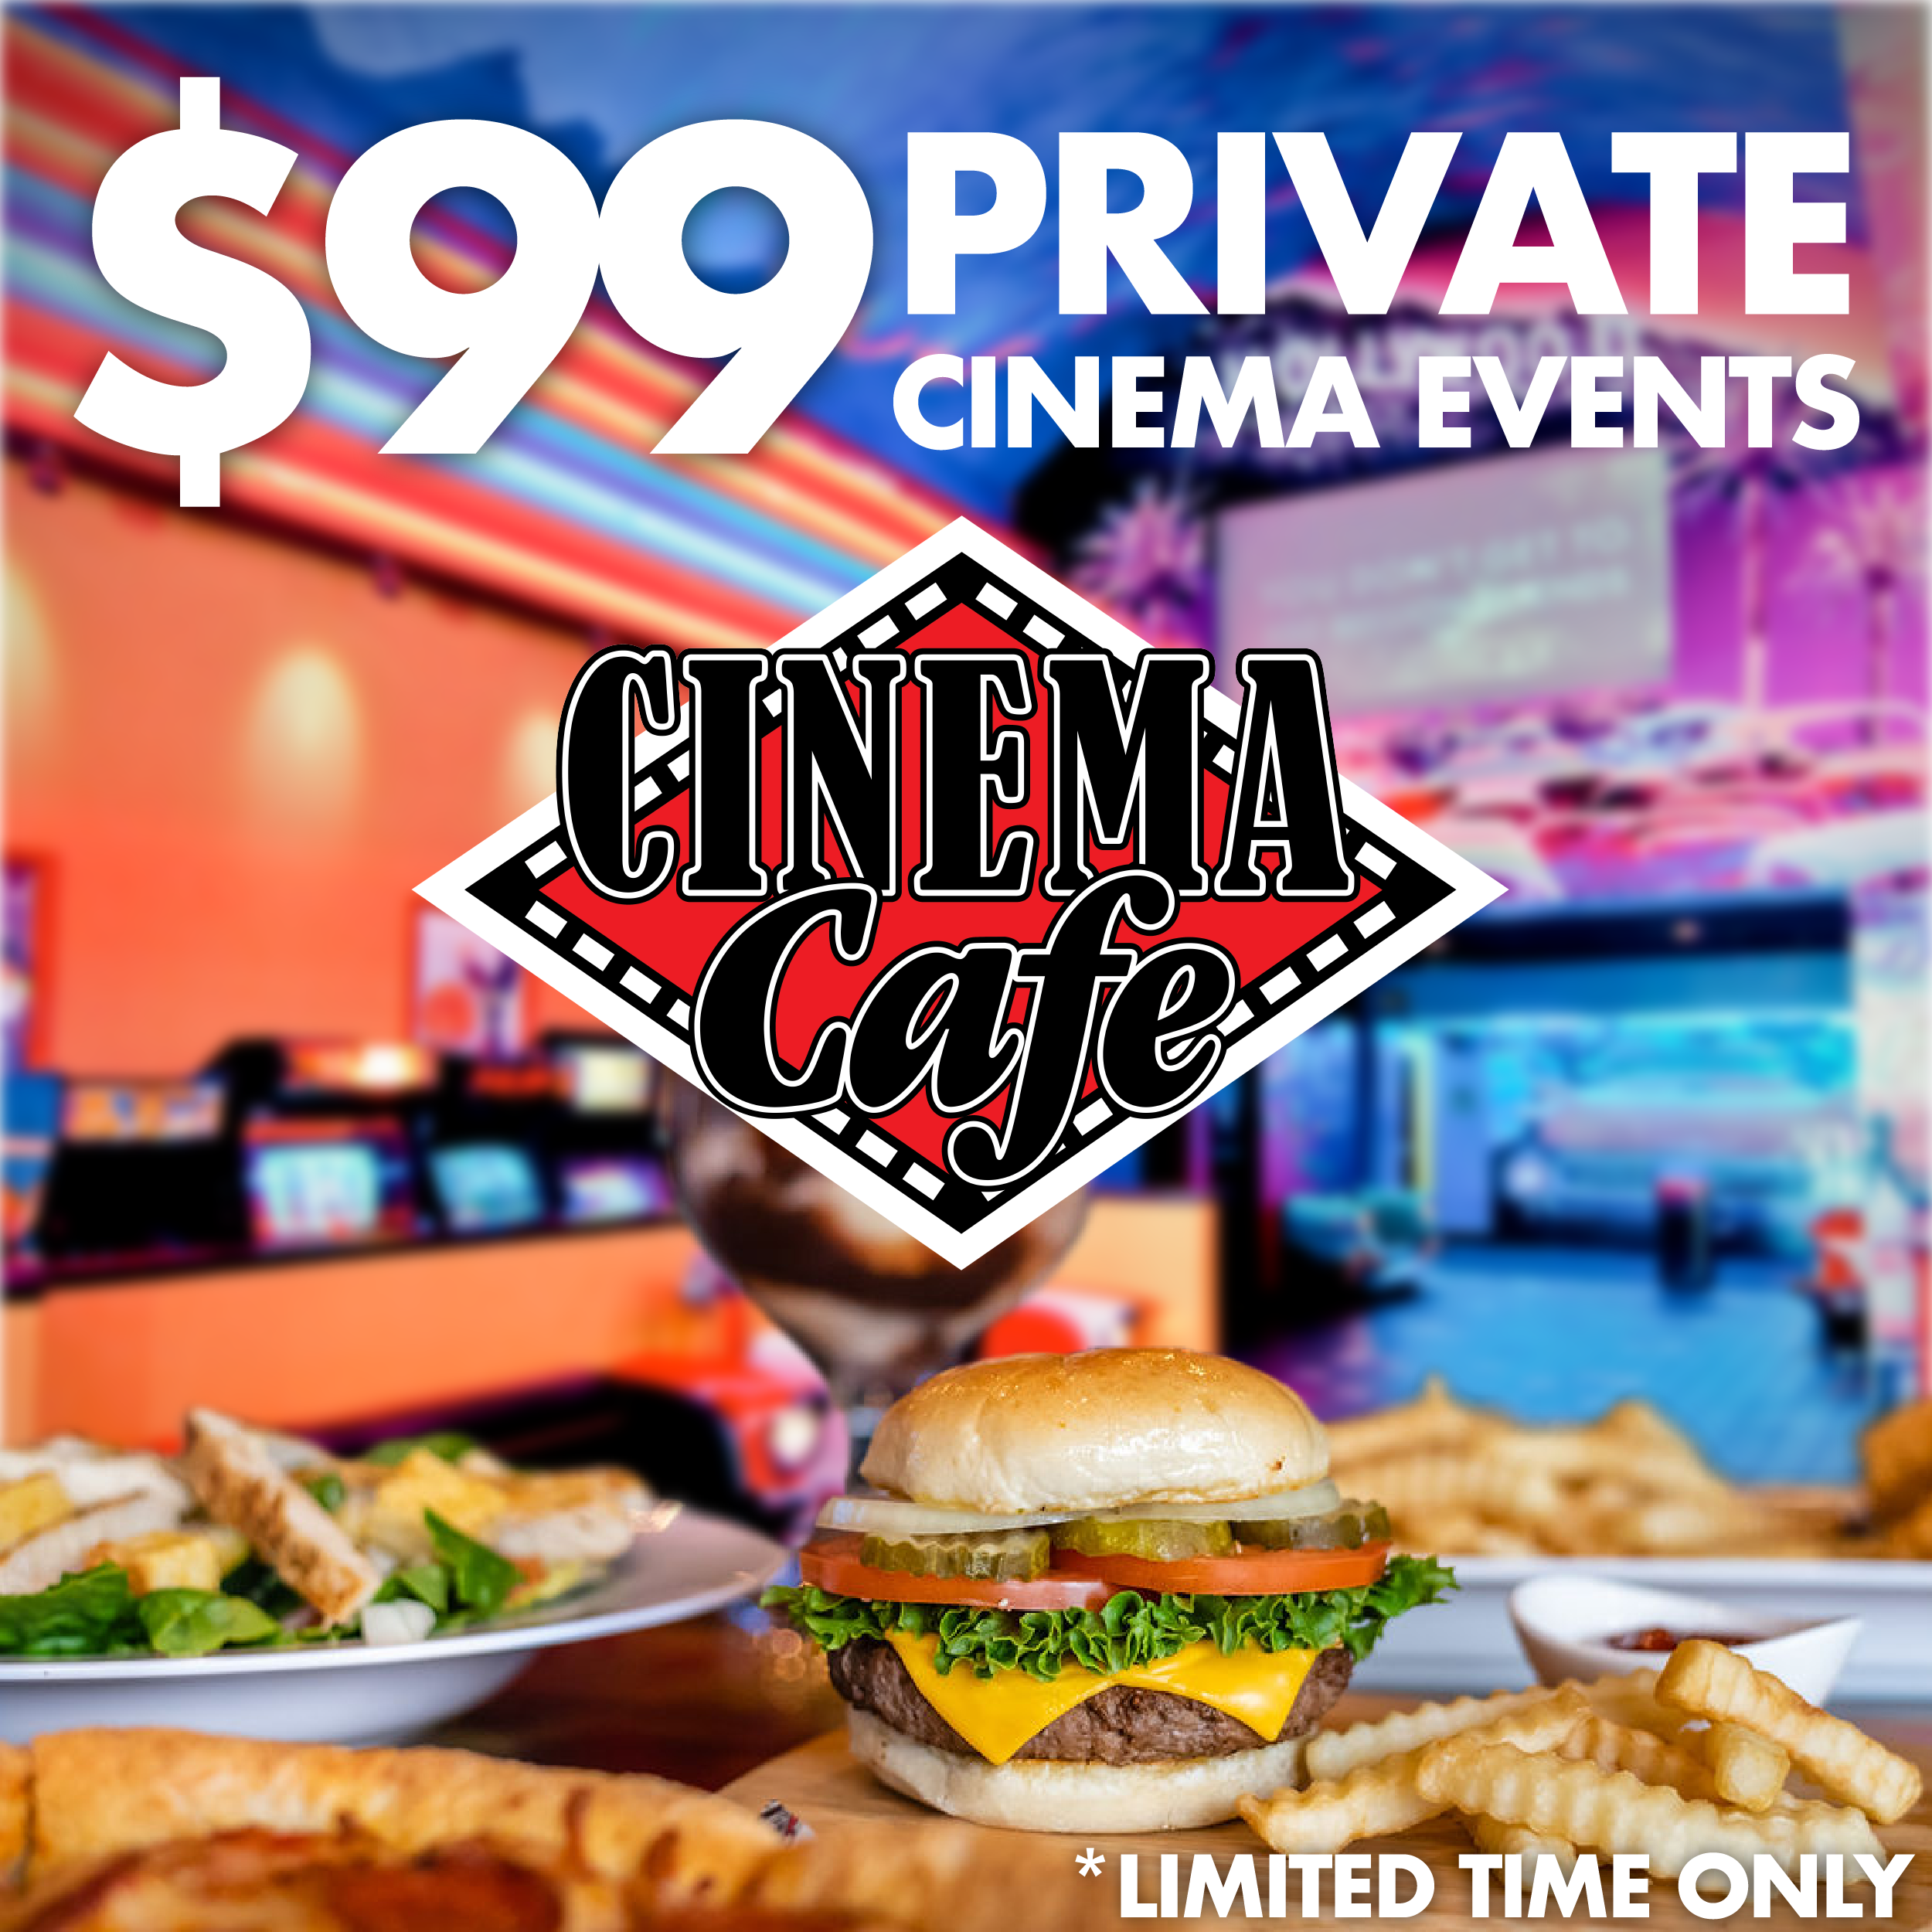 Click for more information about $99 rentals at Riverdale Cinema Cafe.